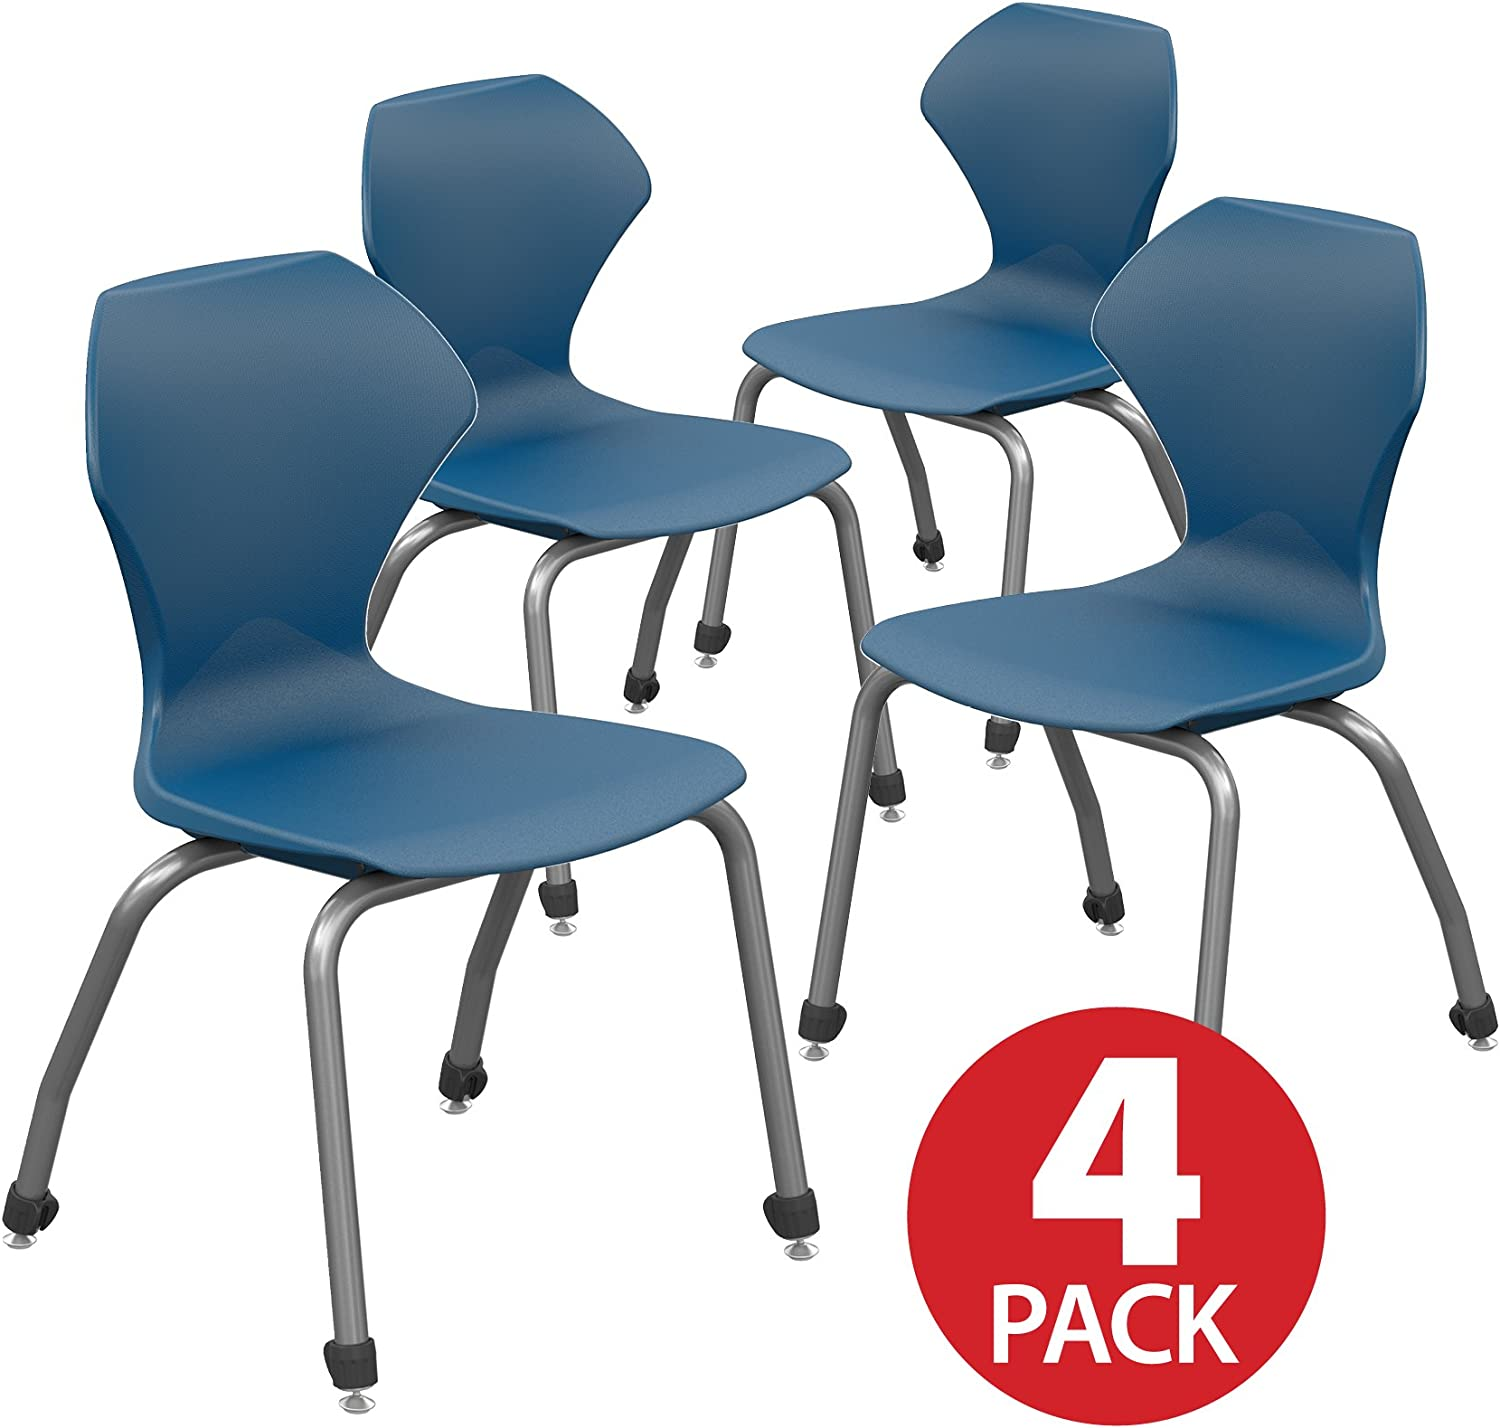 18 Classroom Stack Chair Navy-Seat Marco Group Apex Series 4-Pack Gray-Frame 38a101-18GY-ANA